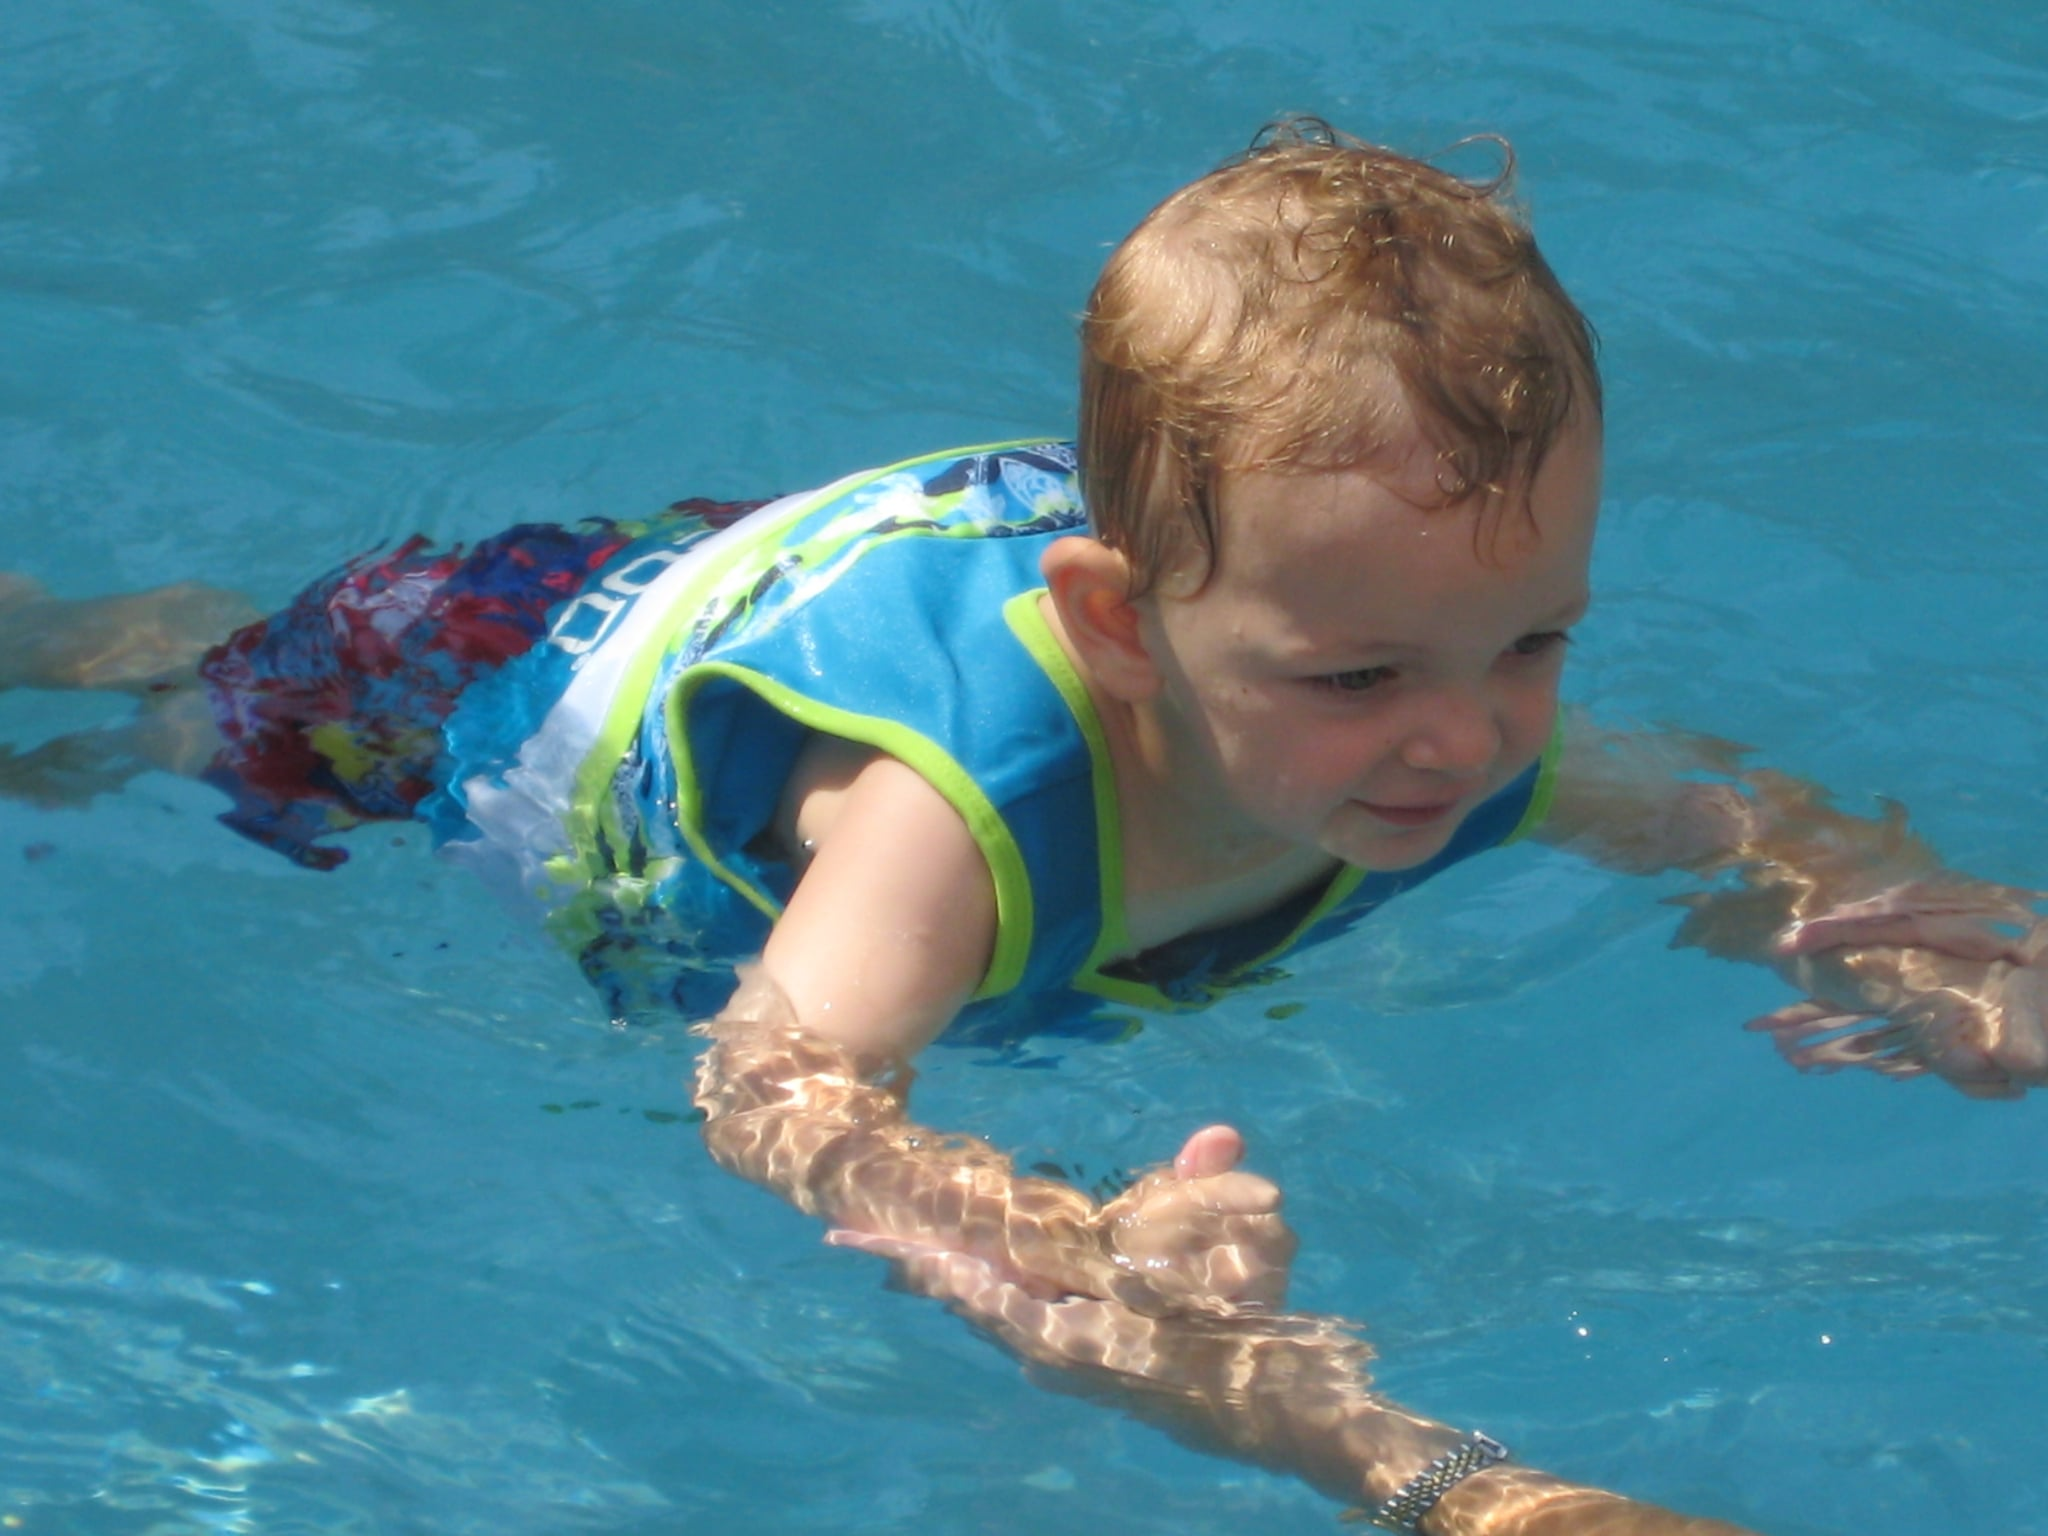 """Parents Can Prevent """"Dry Drowning"""" by Following This 1 Rule While Their Kids Are Swimming"""